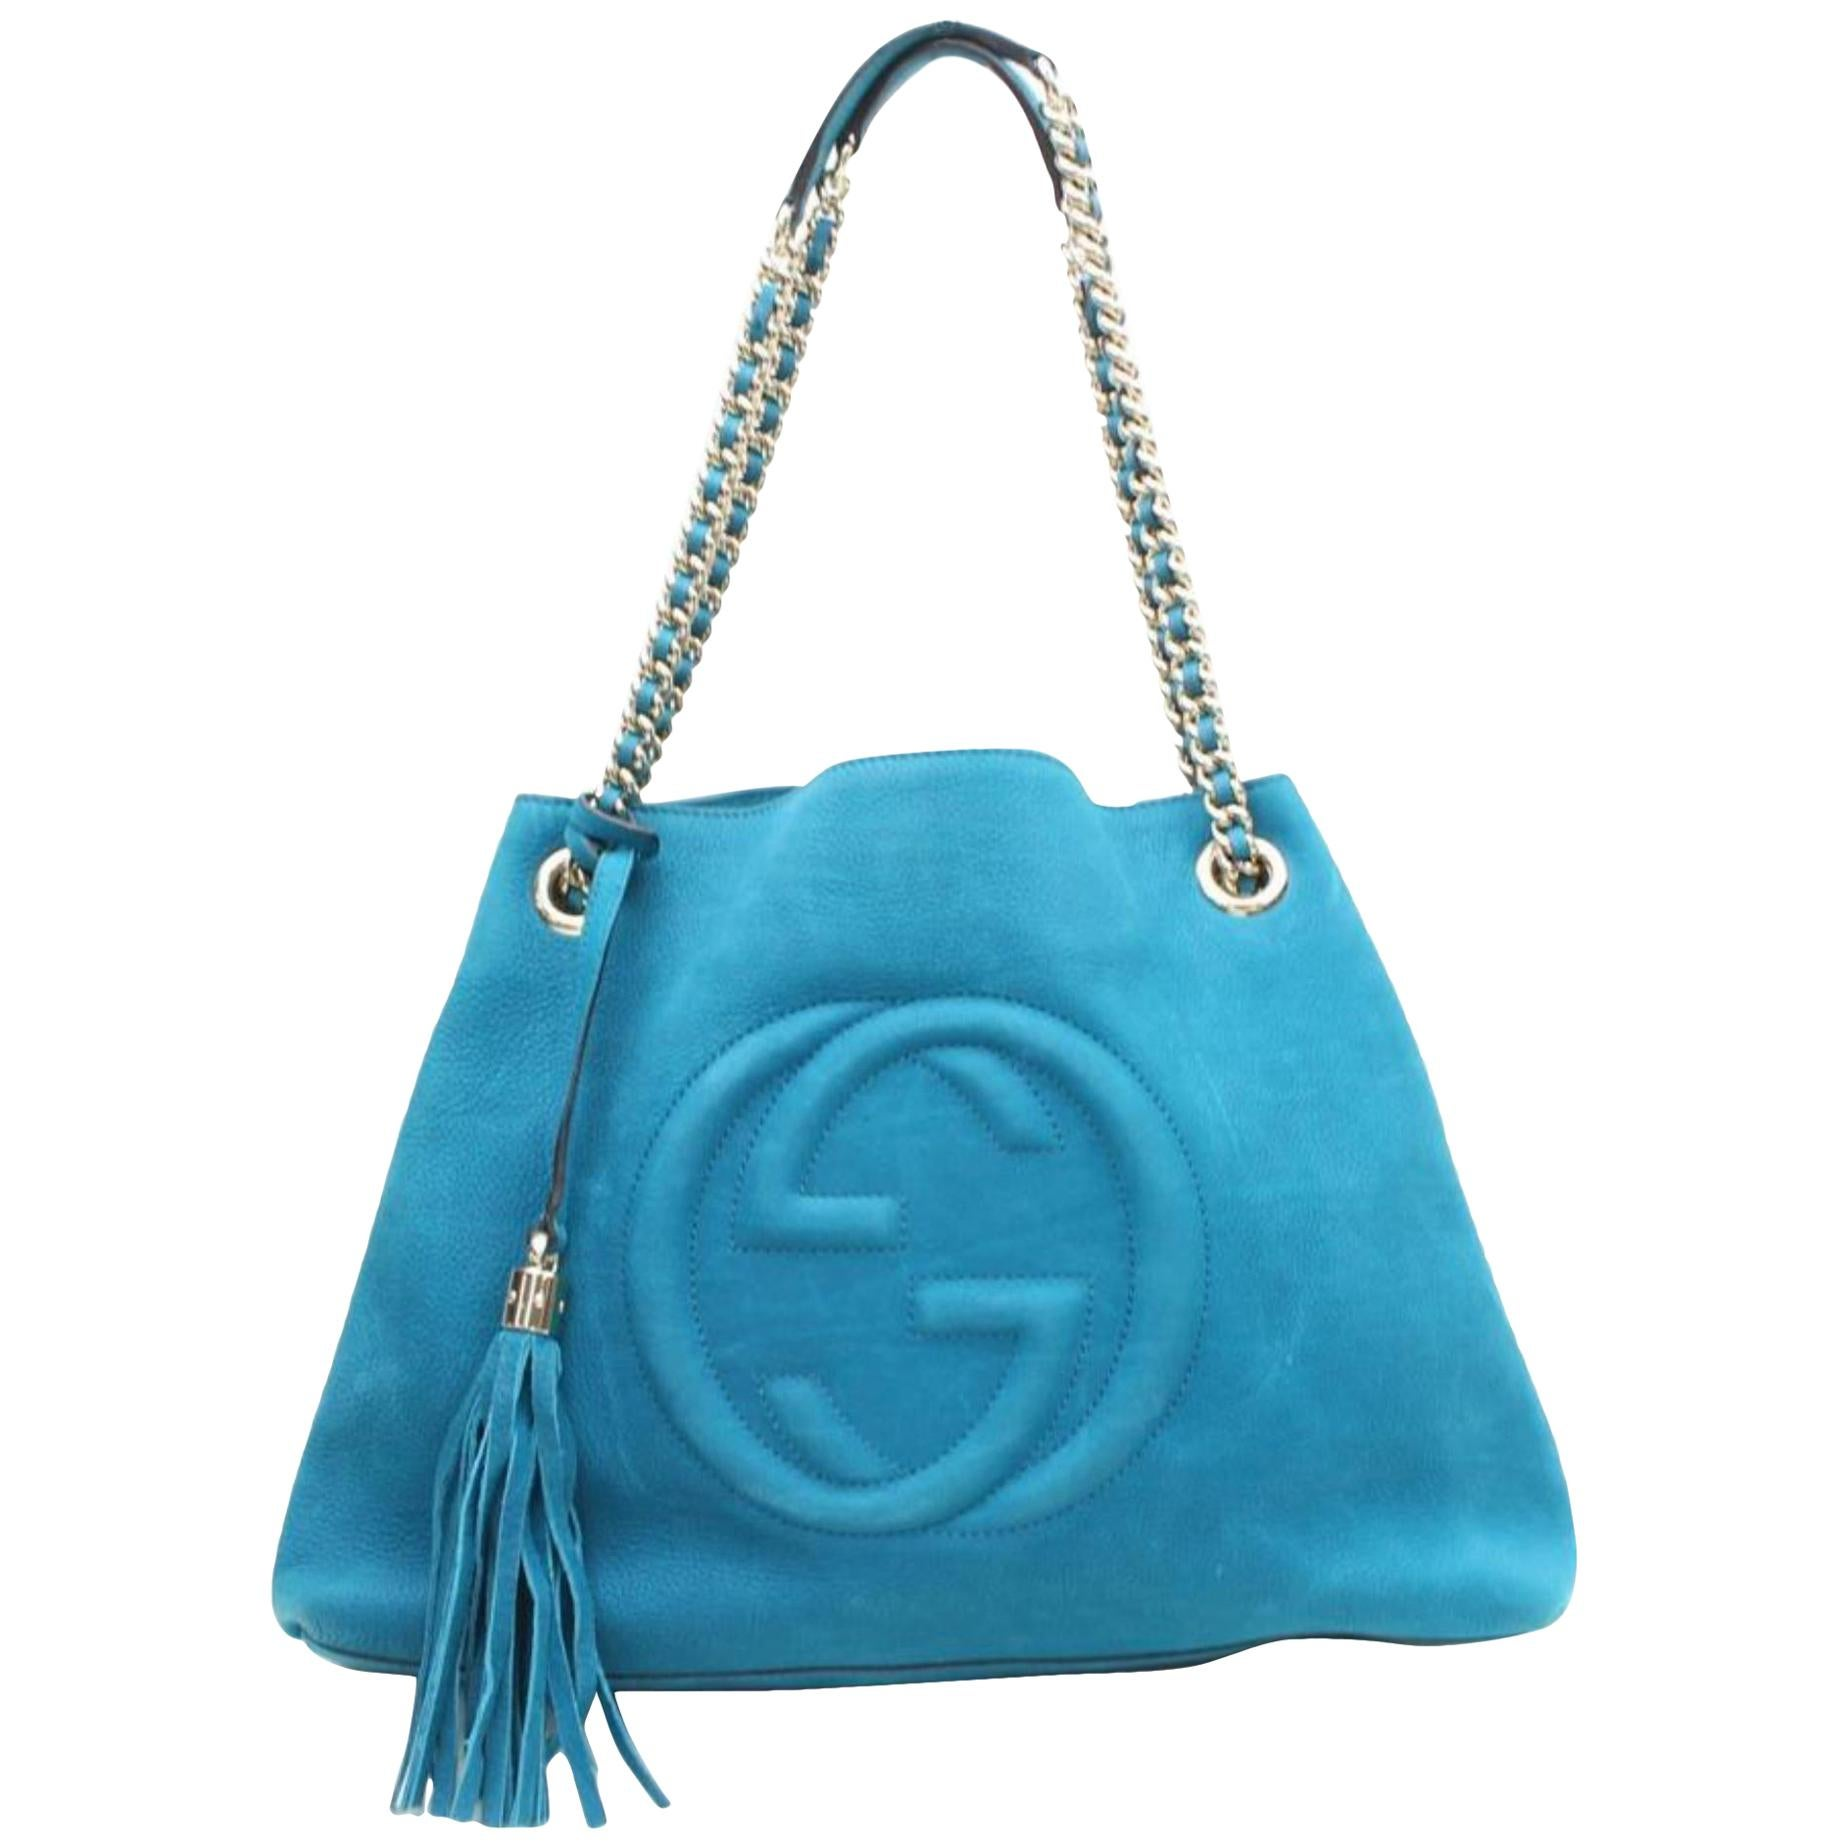 d0e824ad9 Gucci Blue Leather Large Handmade Top Handle Satchel For Sale at 1stdibs